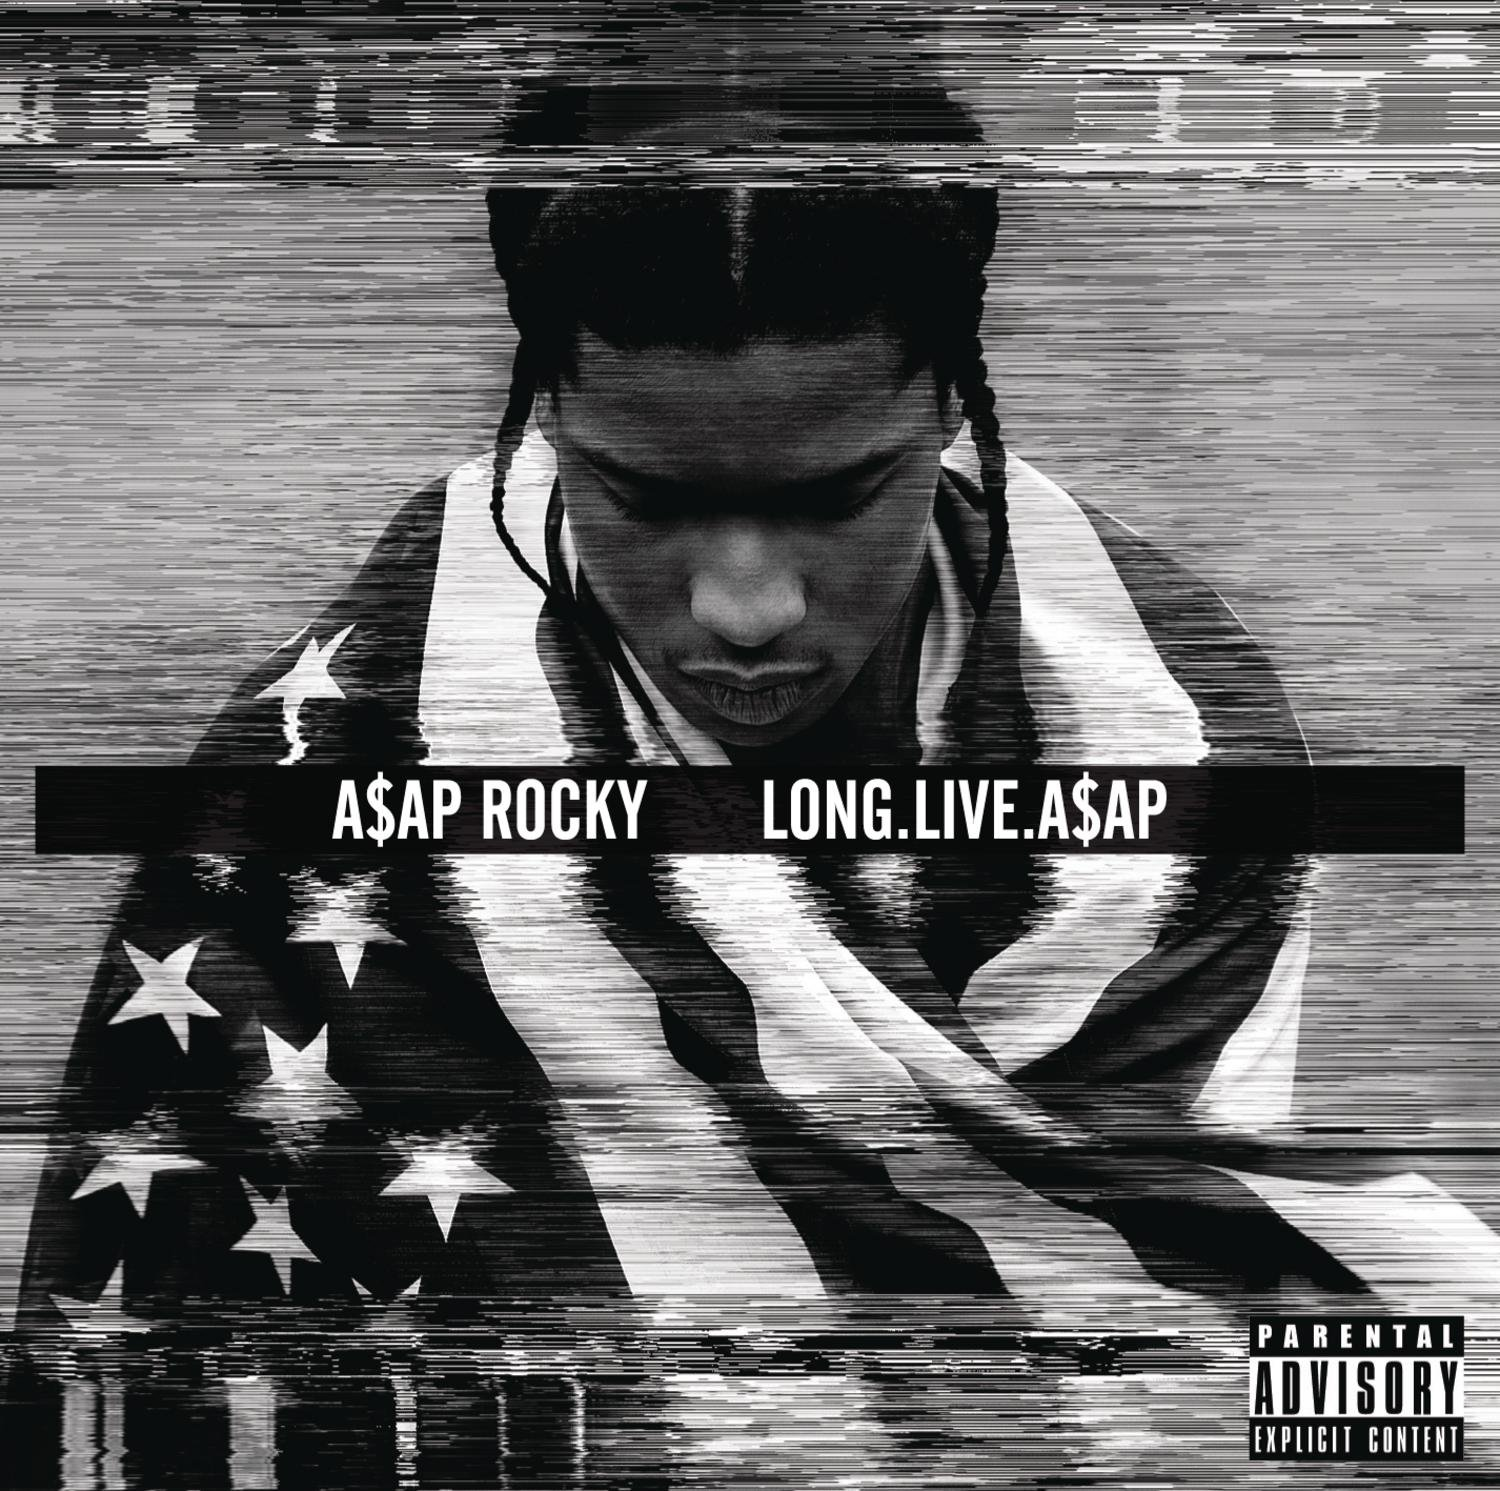 Asap Rocky Fashion Killa Audio A AP Rocky Long Live A AP